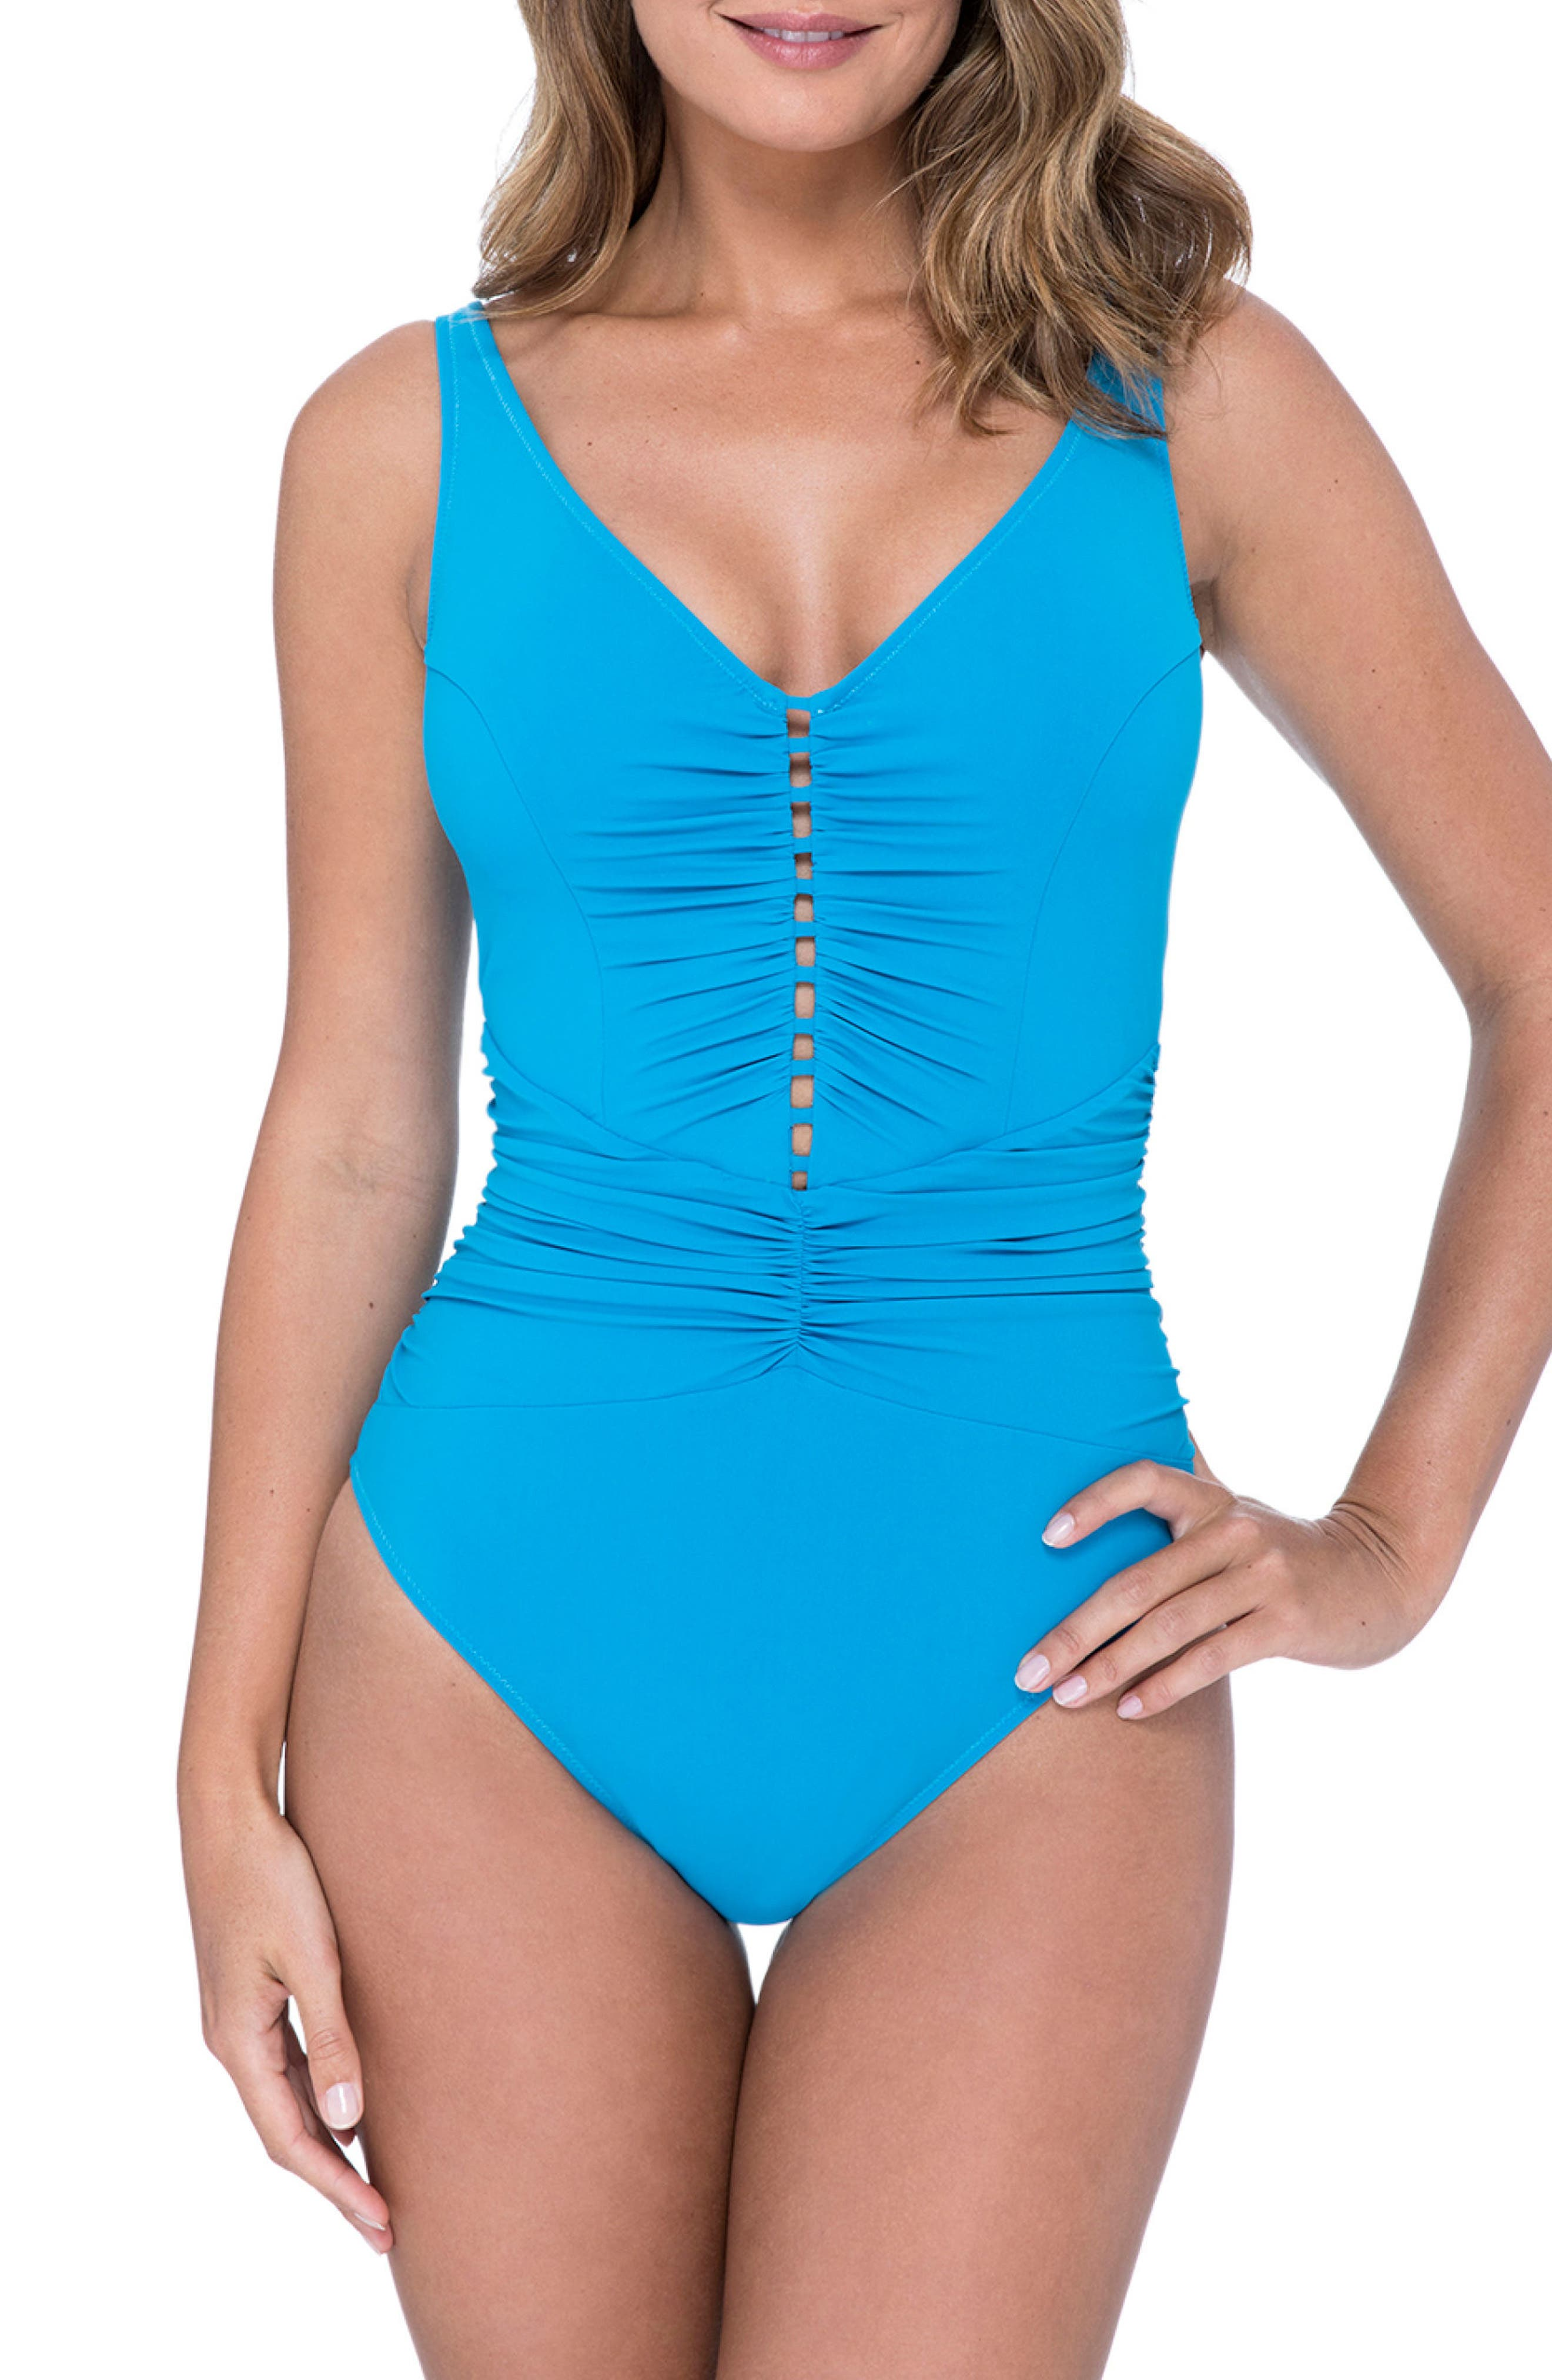 Cocktail Party One-Piece Swimsuit,                         Main,                         color, PEACOCK